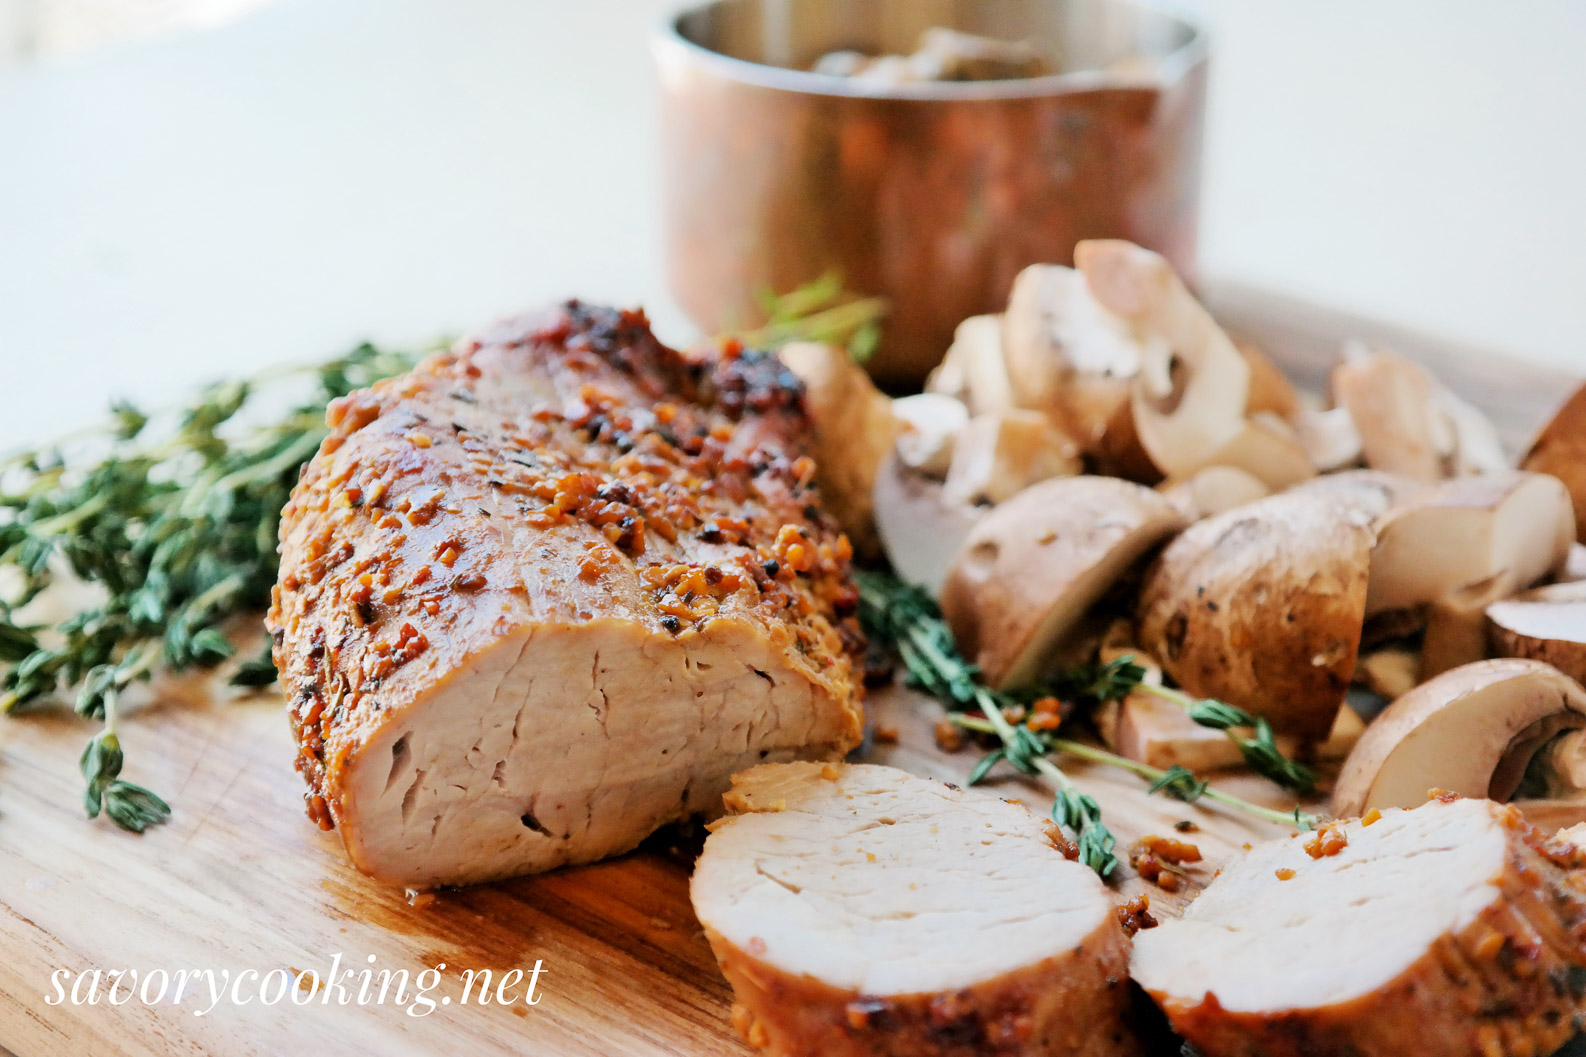 Easy pork loin recipes with few ingredients